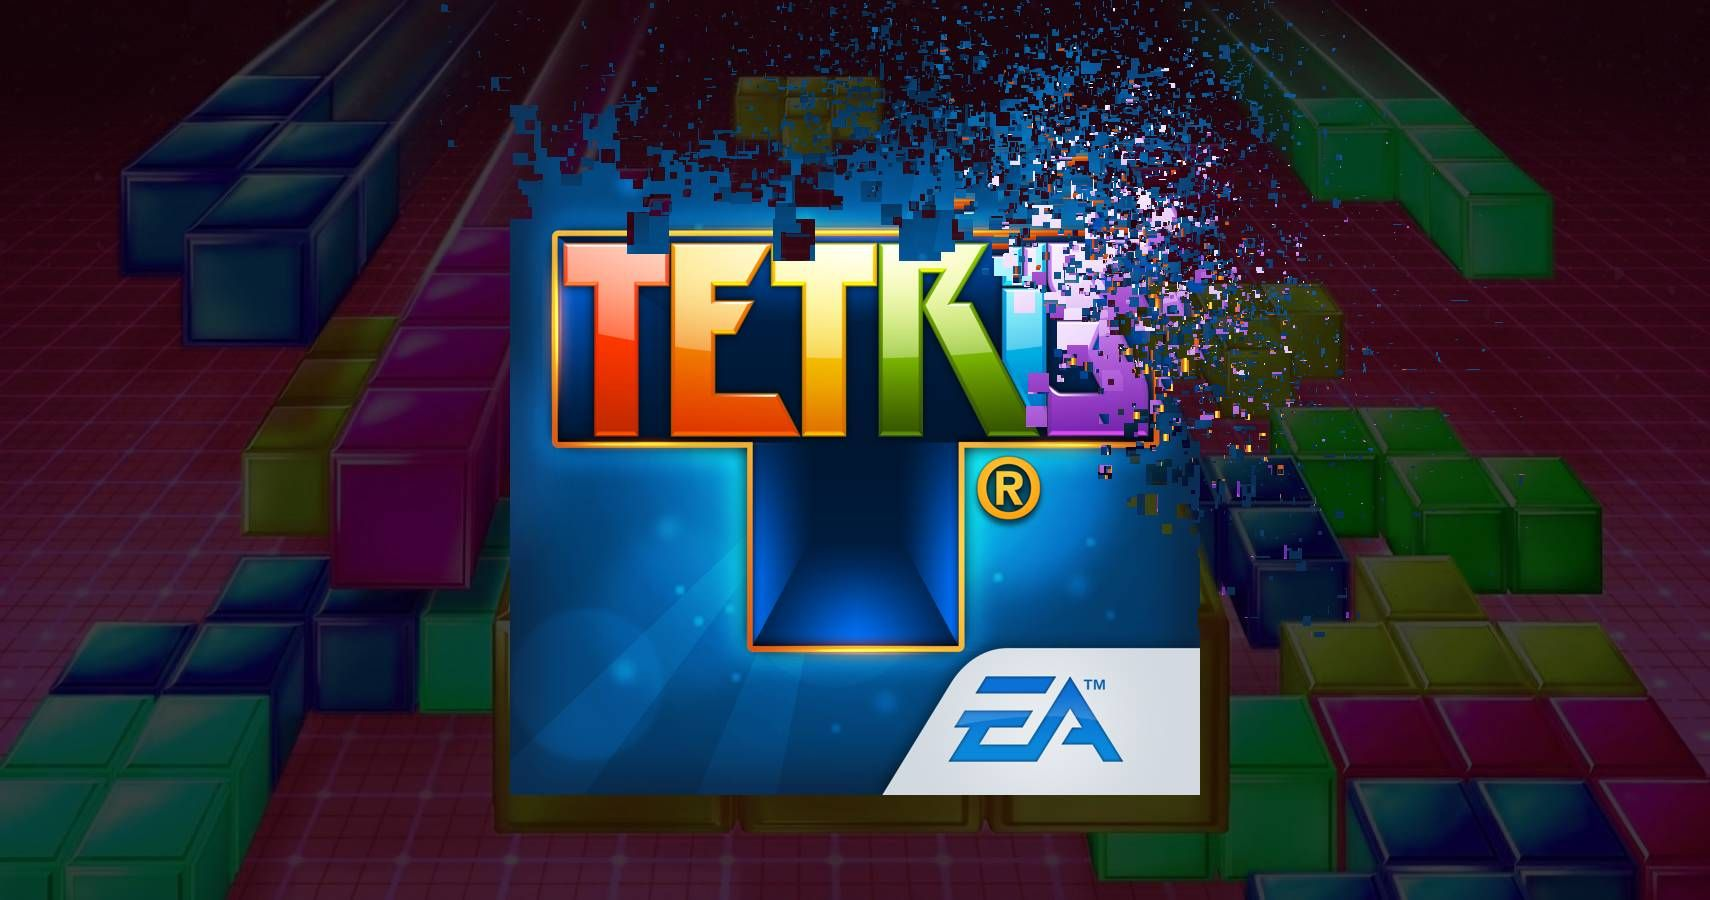 Everyone Who Bought EA's Tetris App Will Lose It On April 21